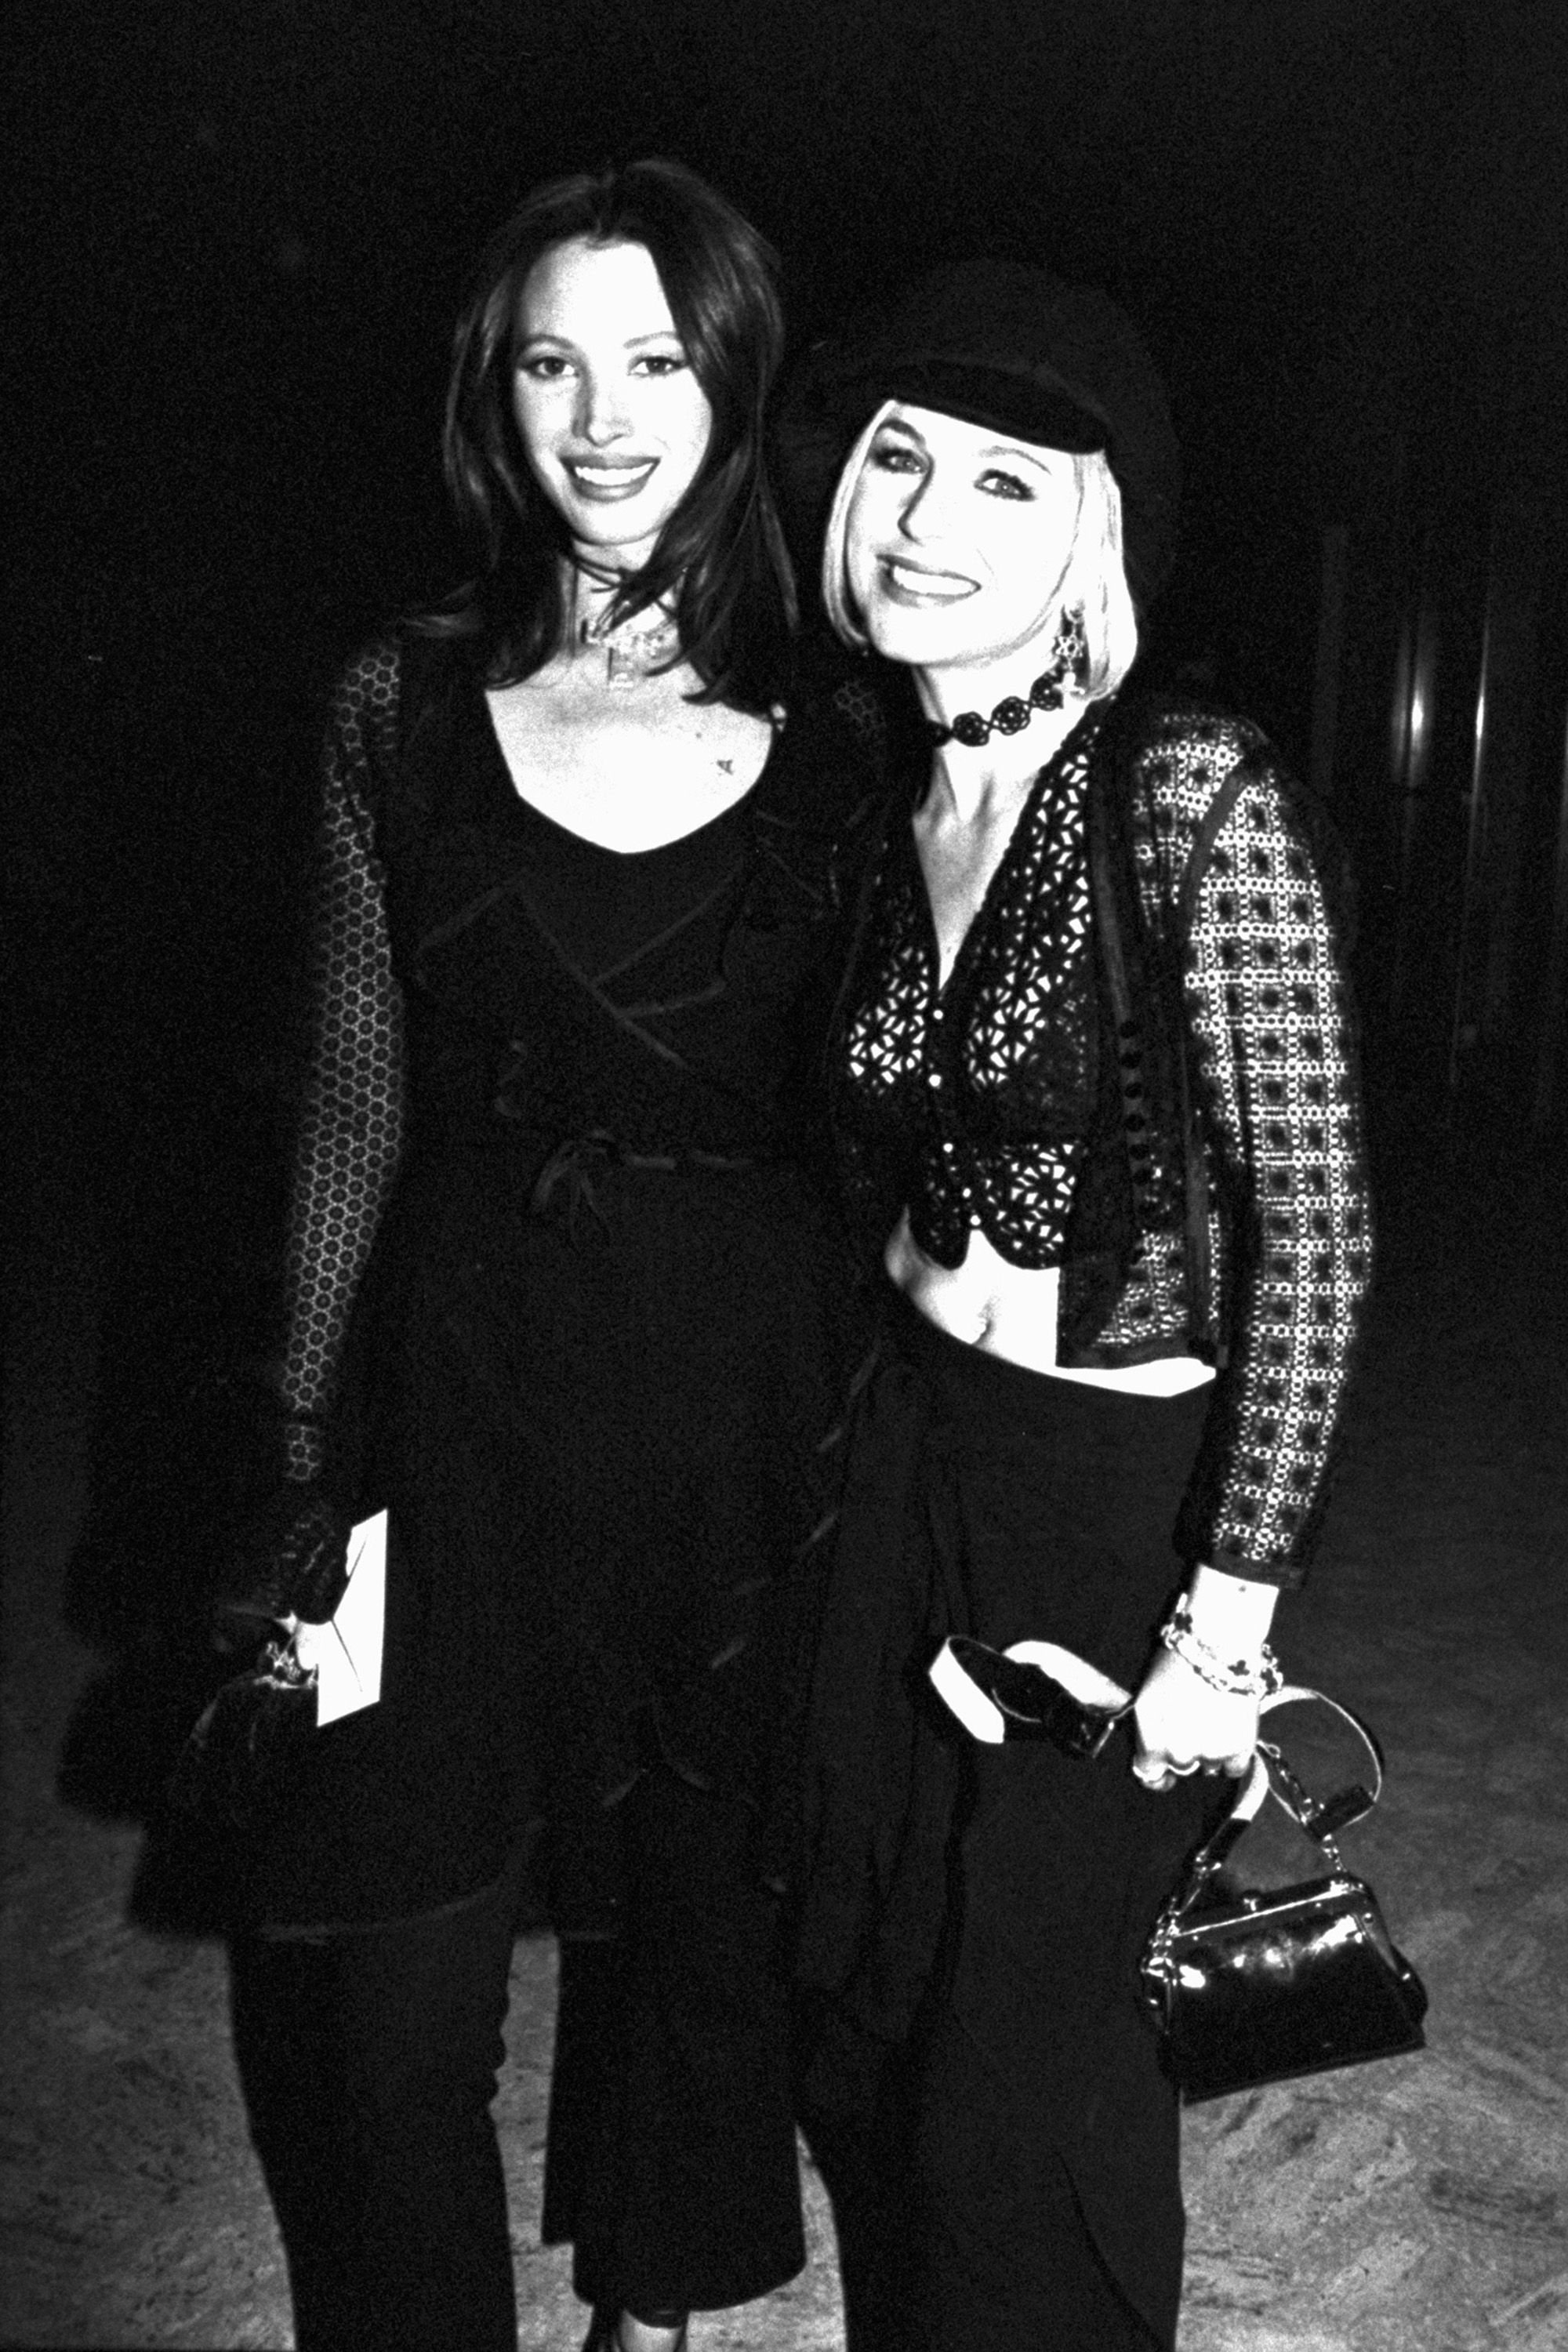 <p>The '90s took crochet to cool, gothic places.</p>